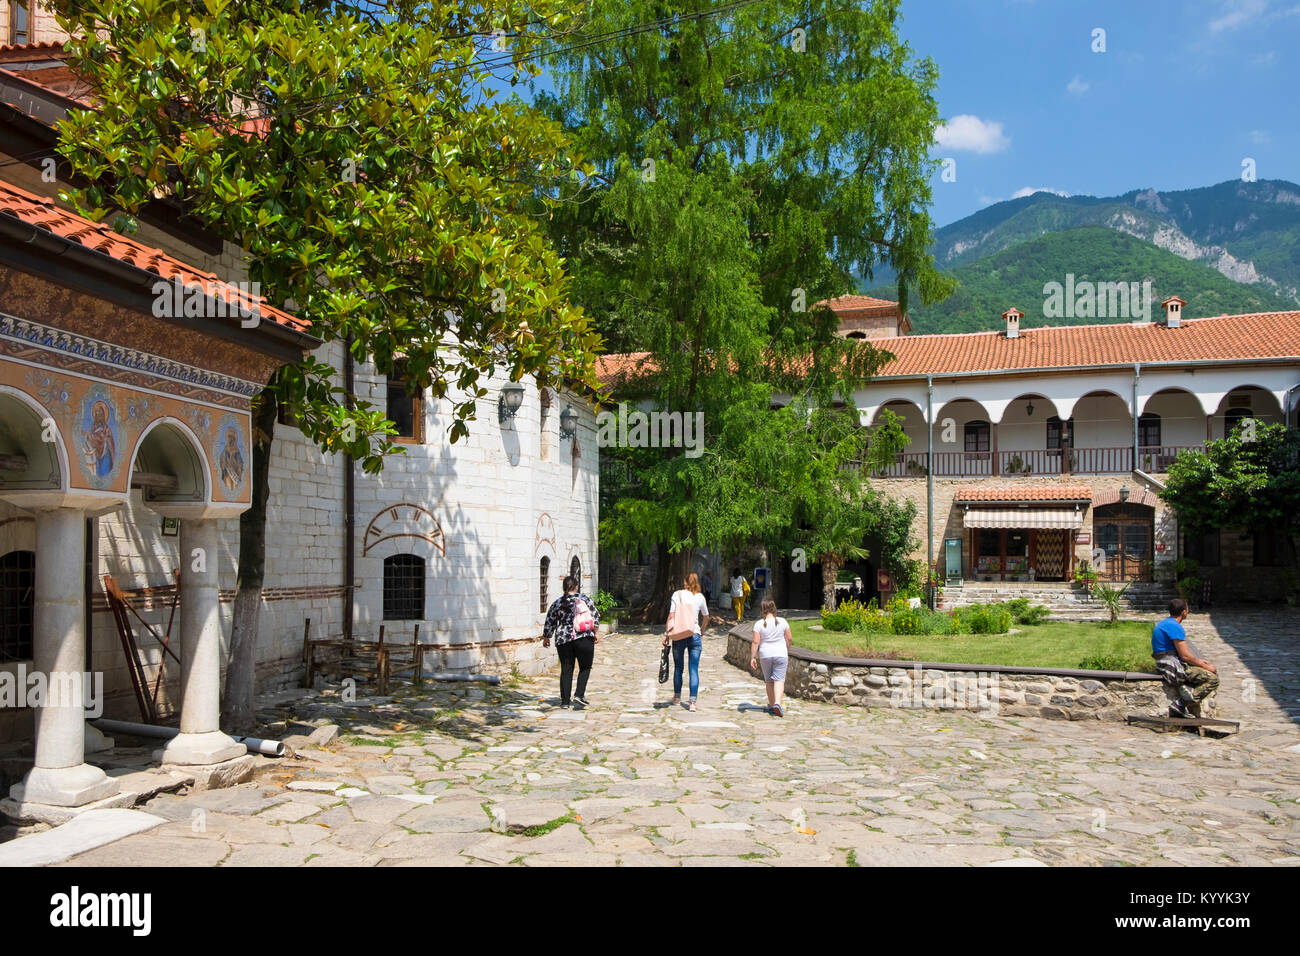 Tourists at the Bachkovo Monastery, Bulgaria, Europe - Stock Image